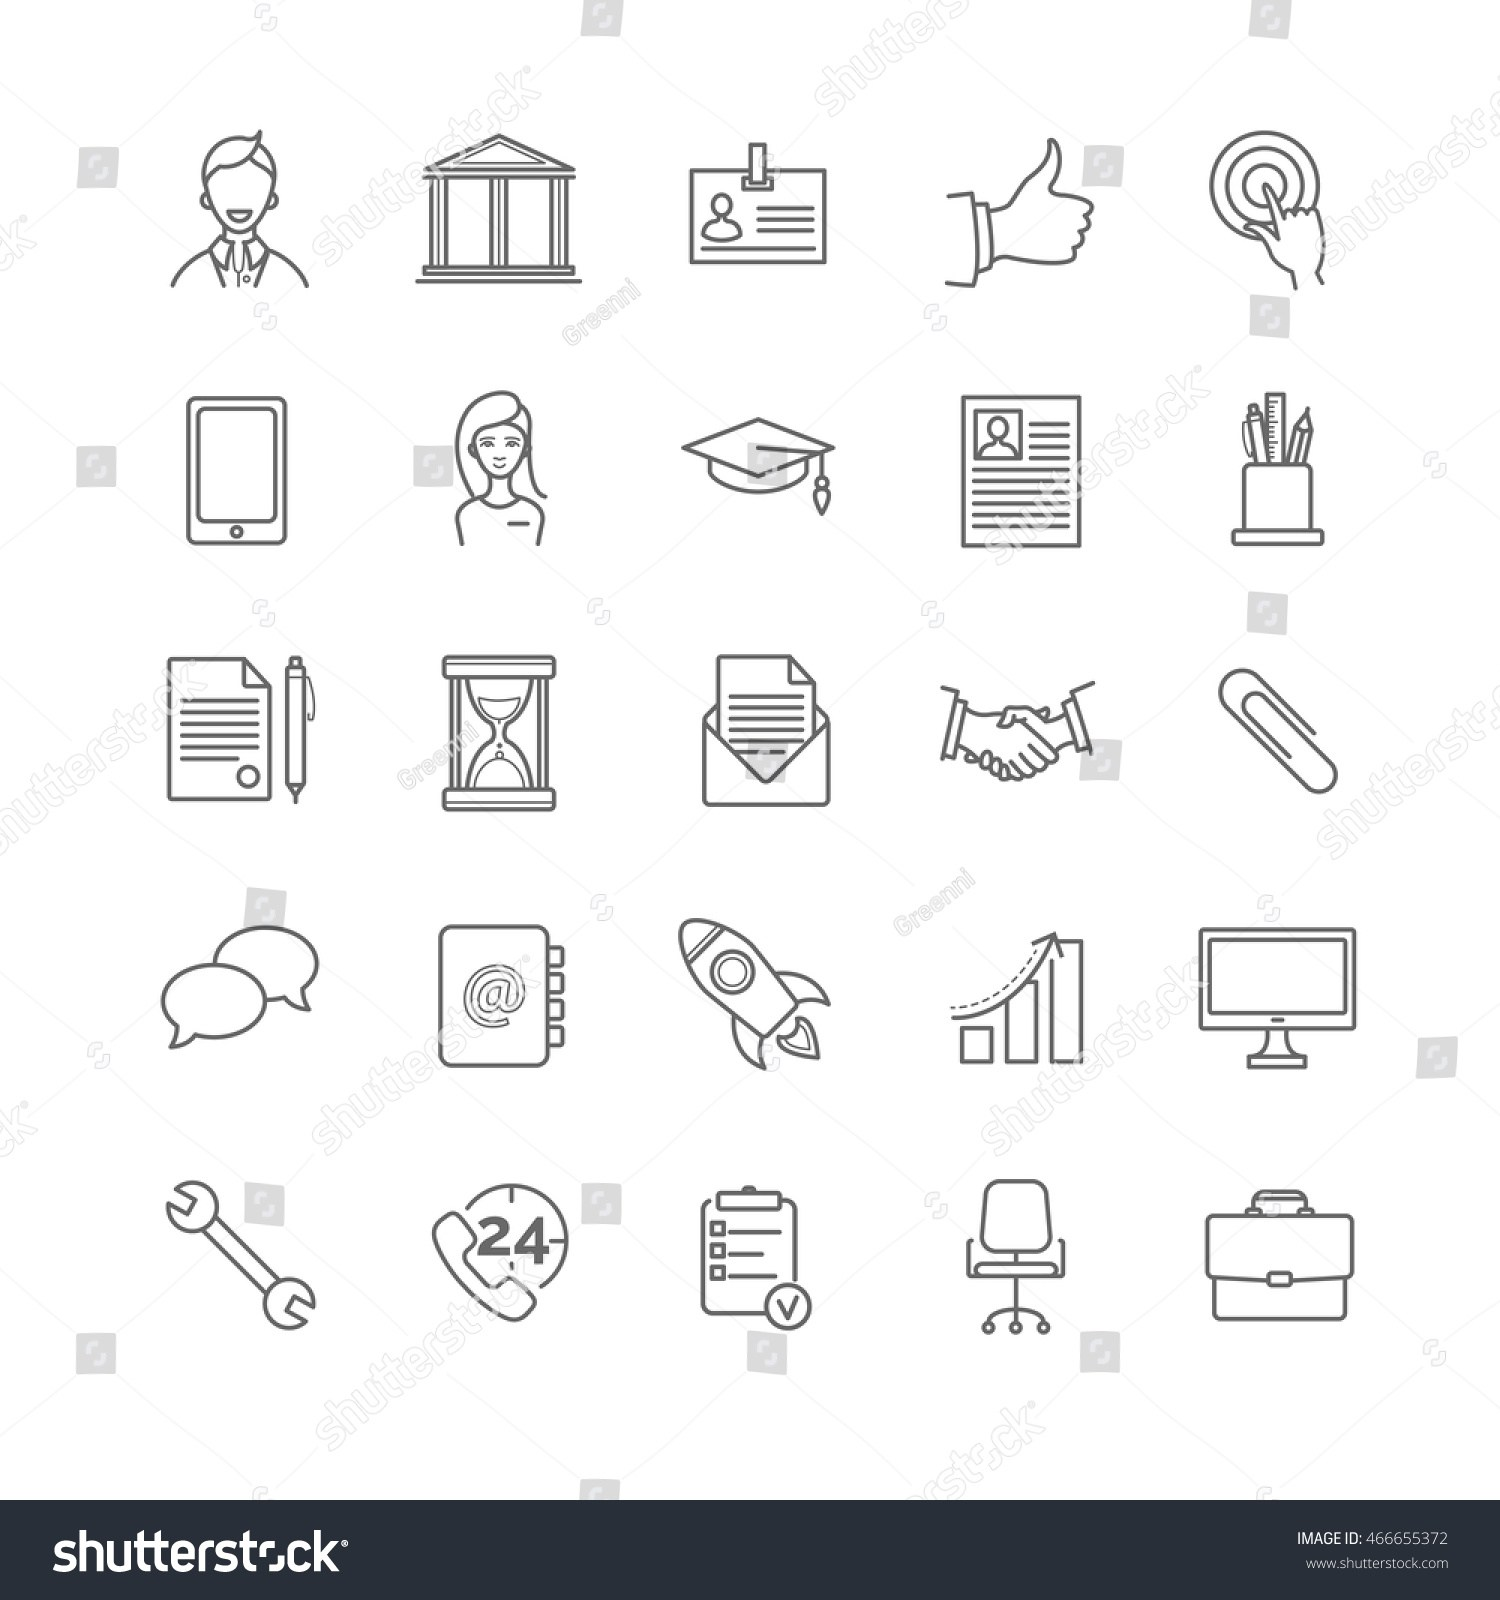 Resume Icons Vector At Getdrawings Com Free For Personal Use